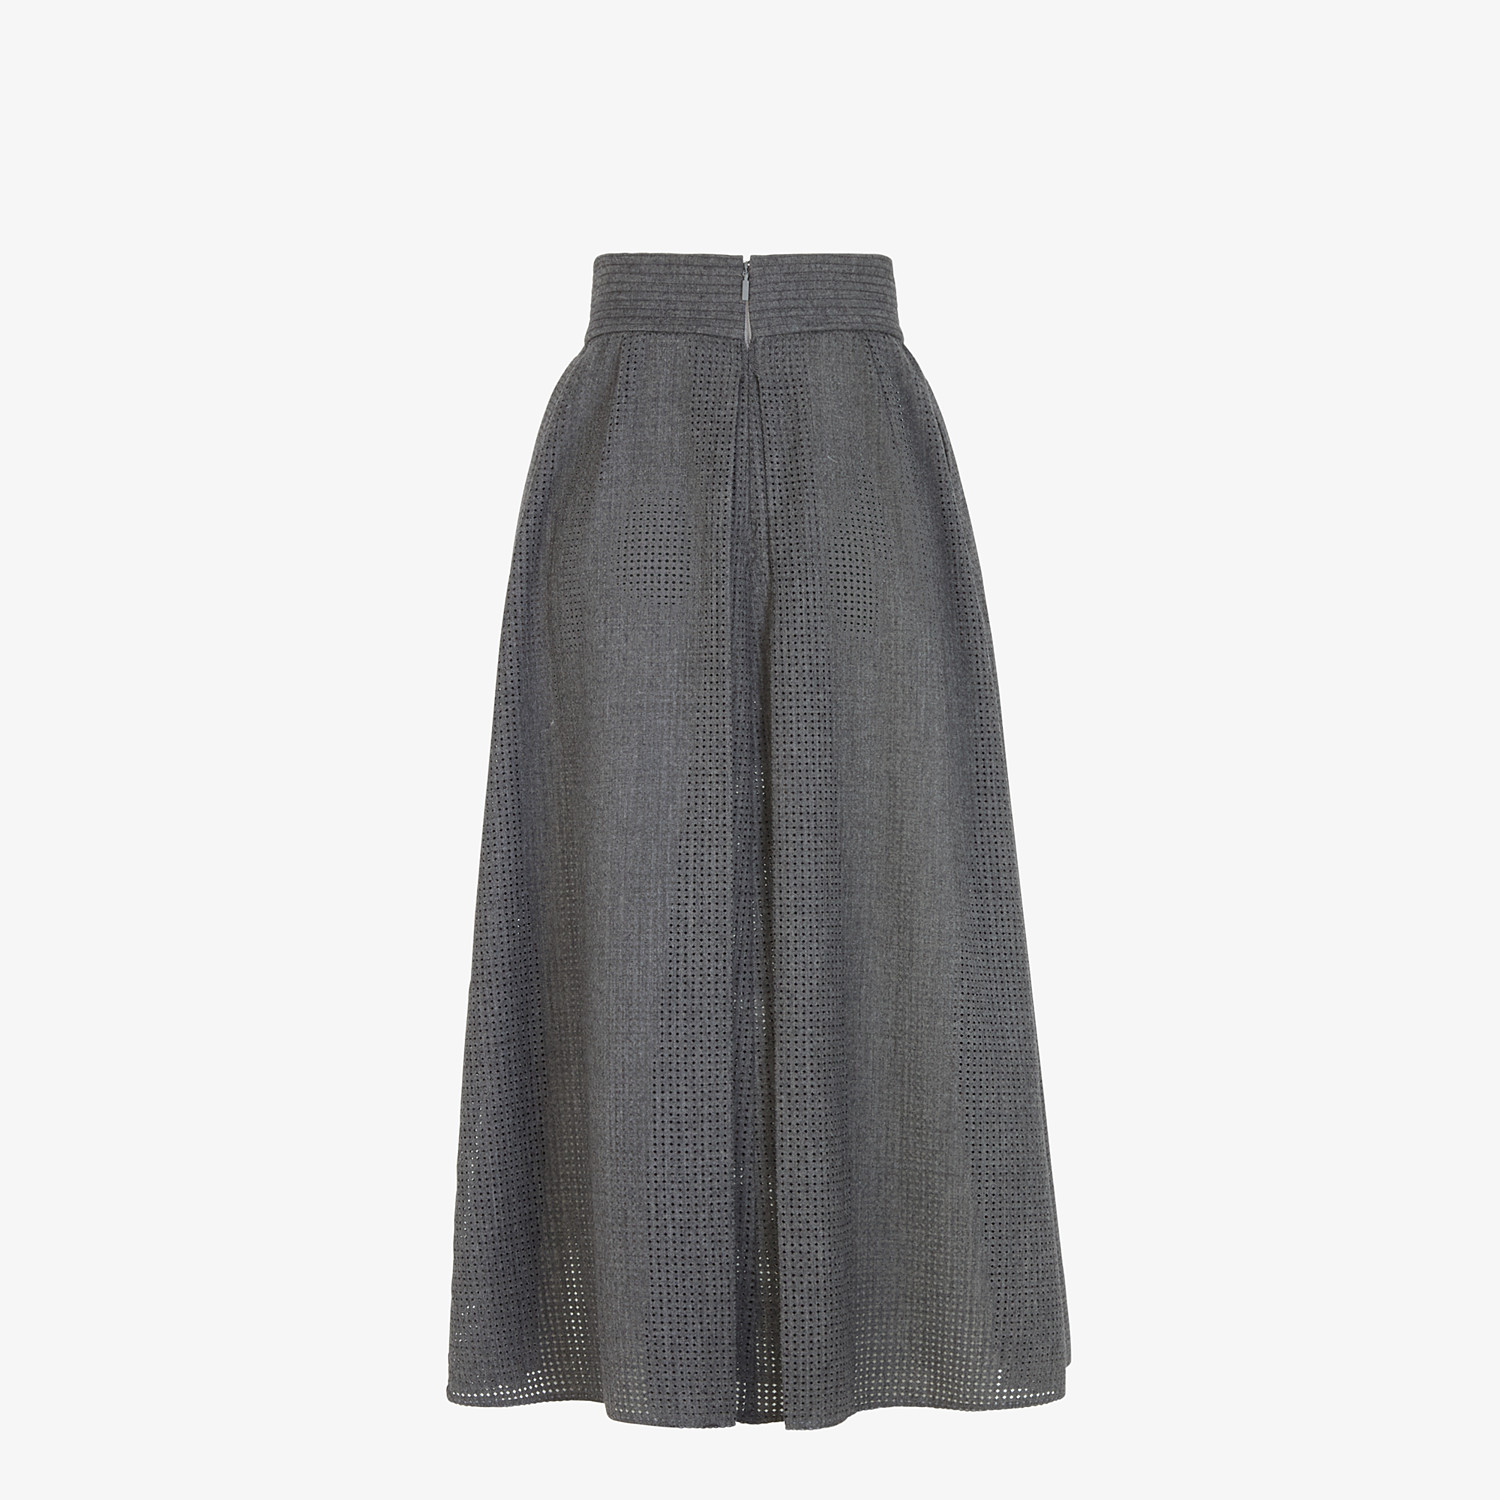 FENDI SKIRT - Grey flannel skirt - view 2 detail